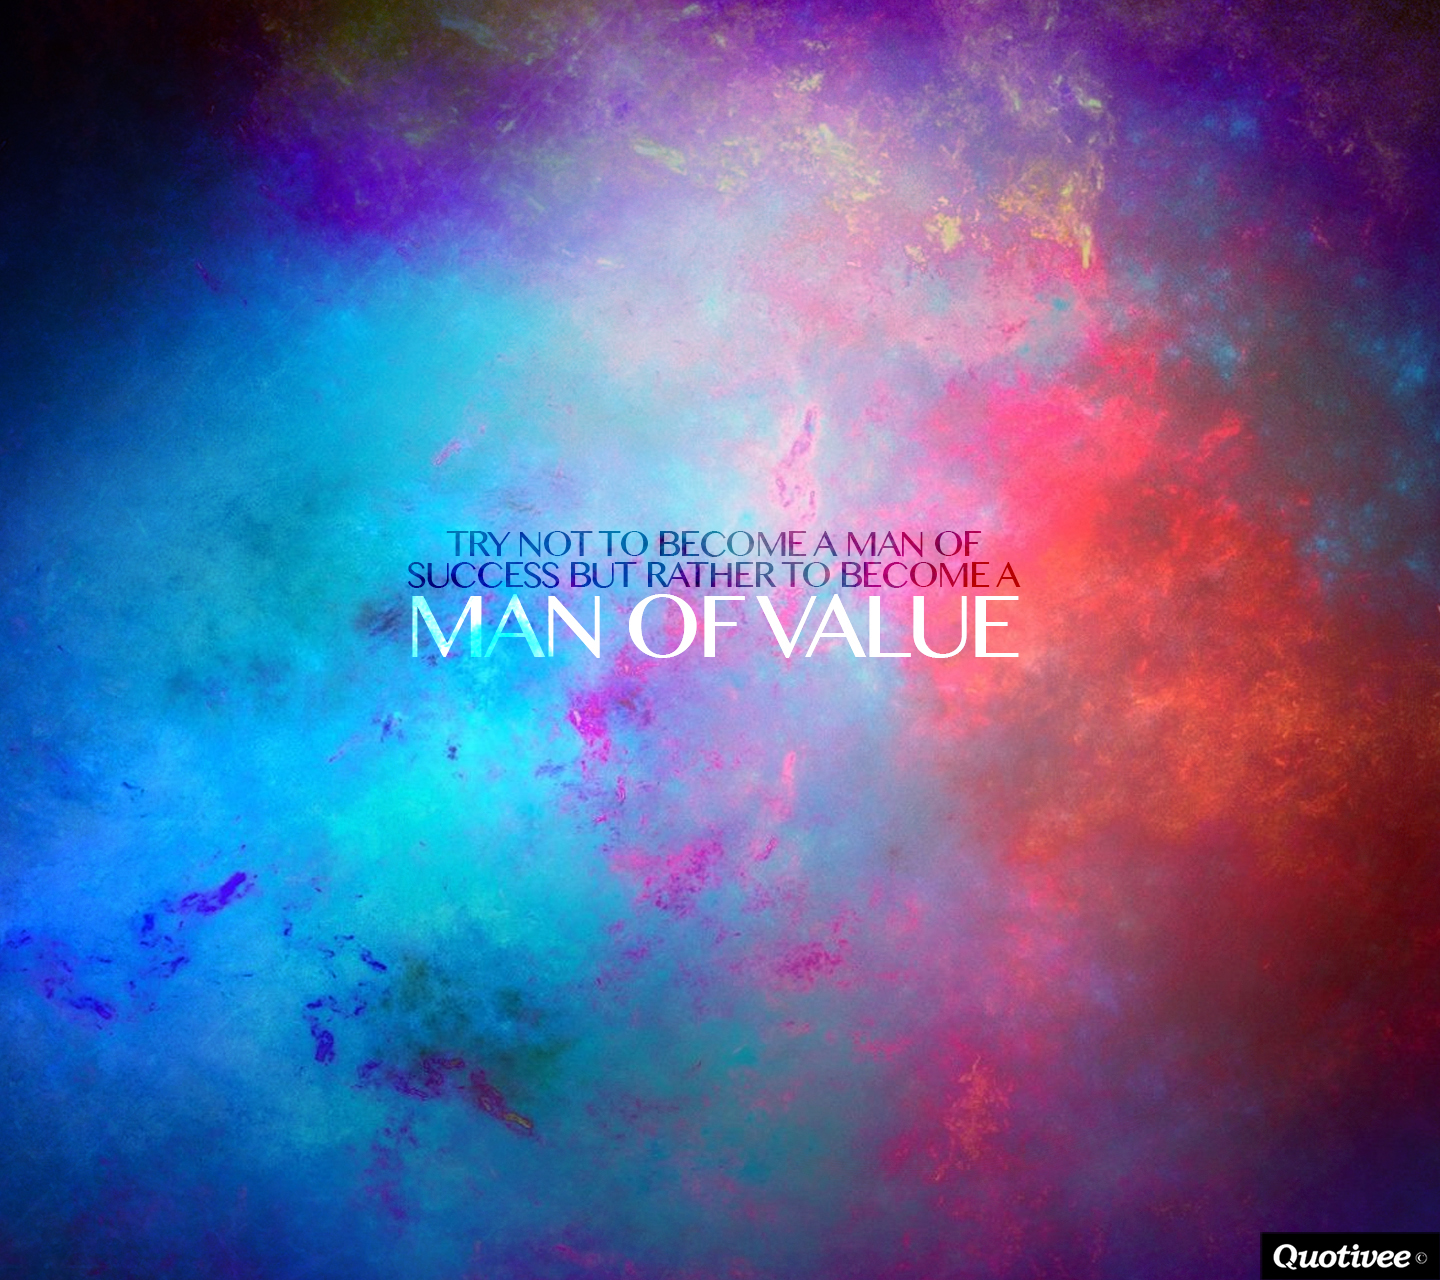 Impossible Quote Wallpaper Man Of Value Inspirational Quotes Quotivee